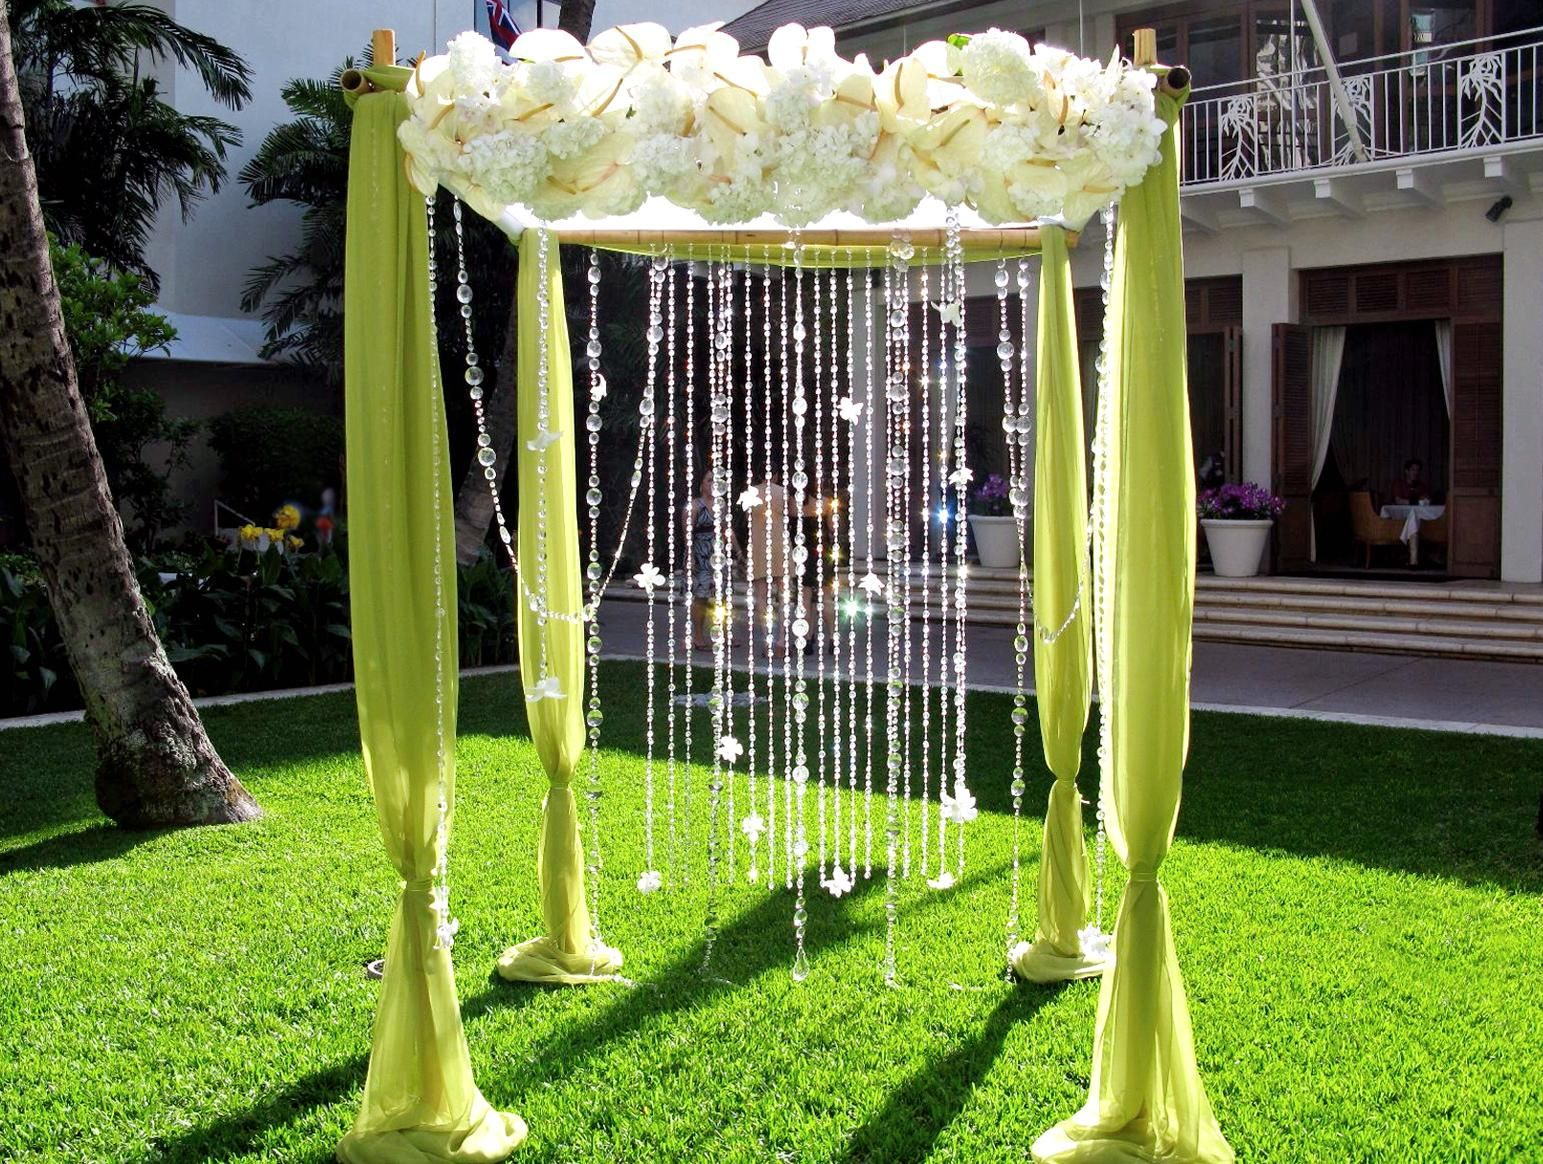 Wedding lawn decoration ideas  free images of archways for weddings  Arches For Weddings